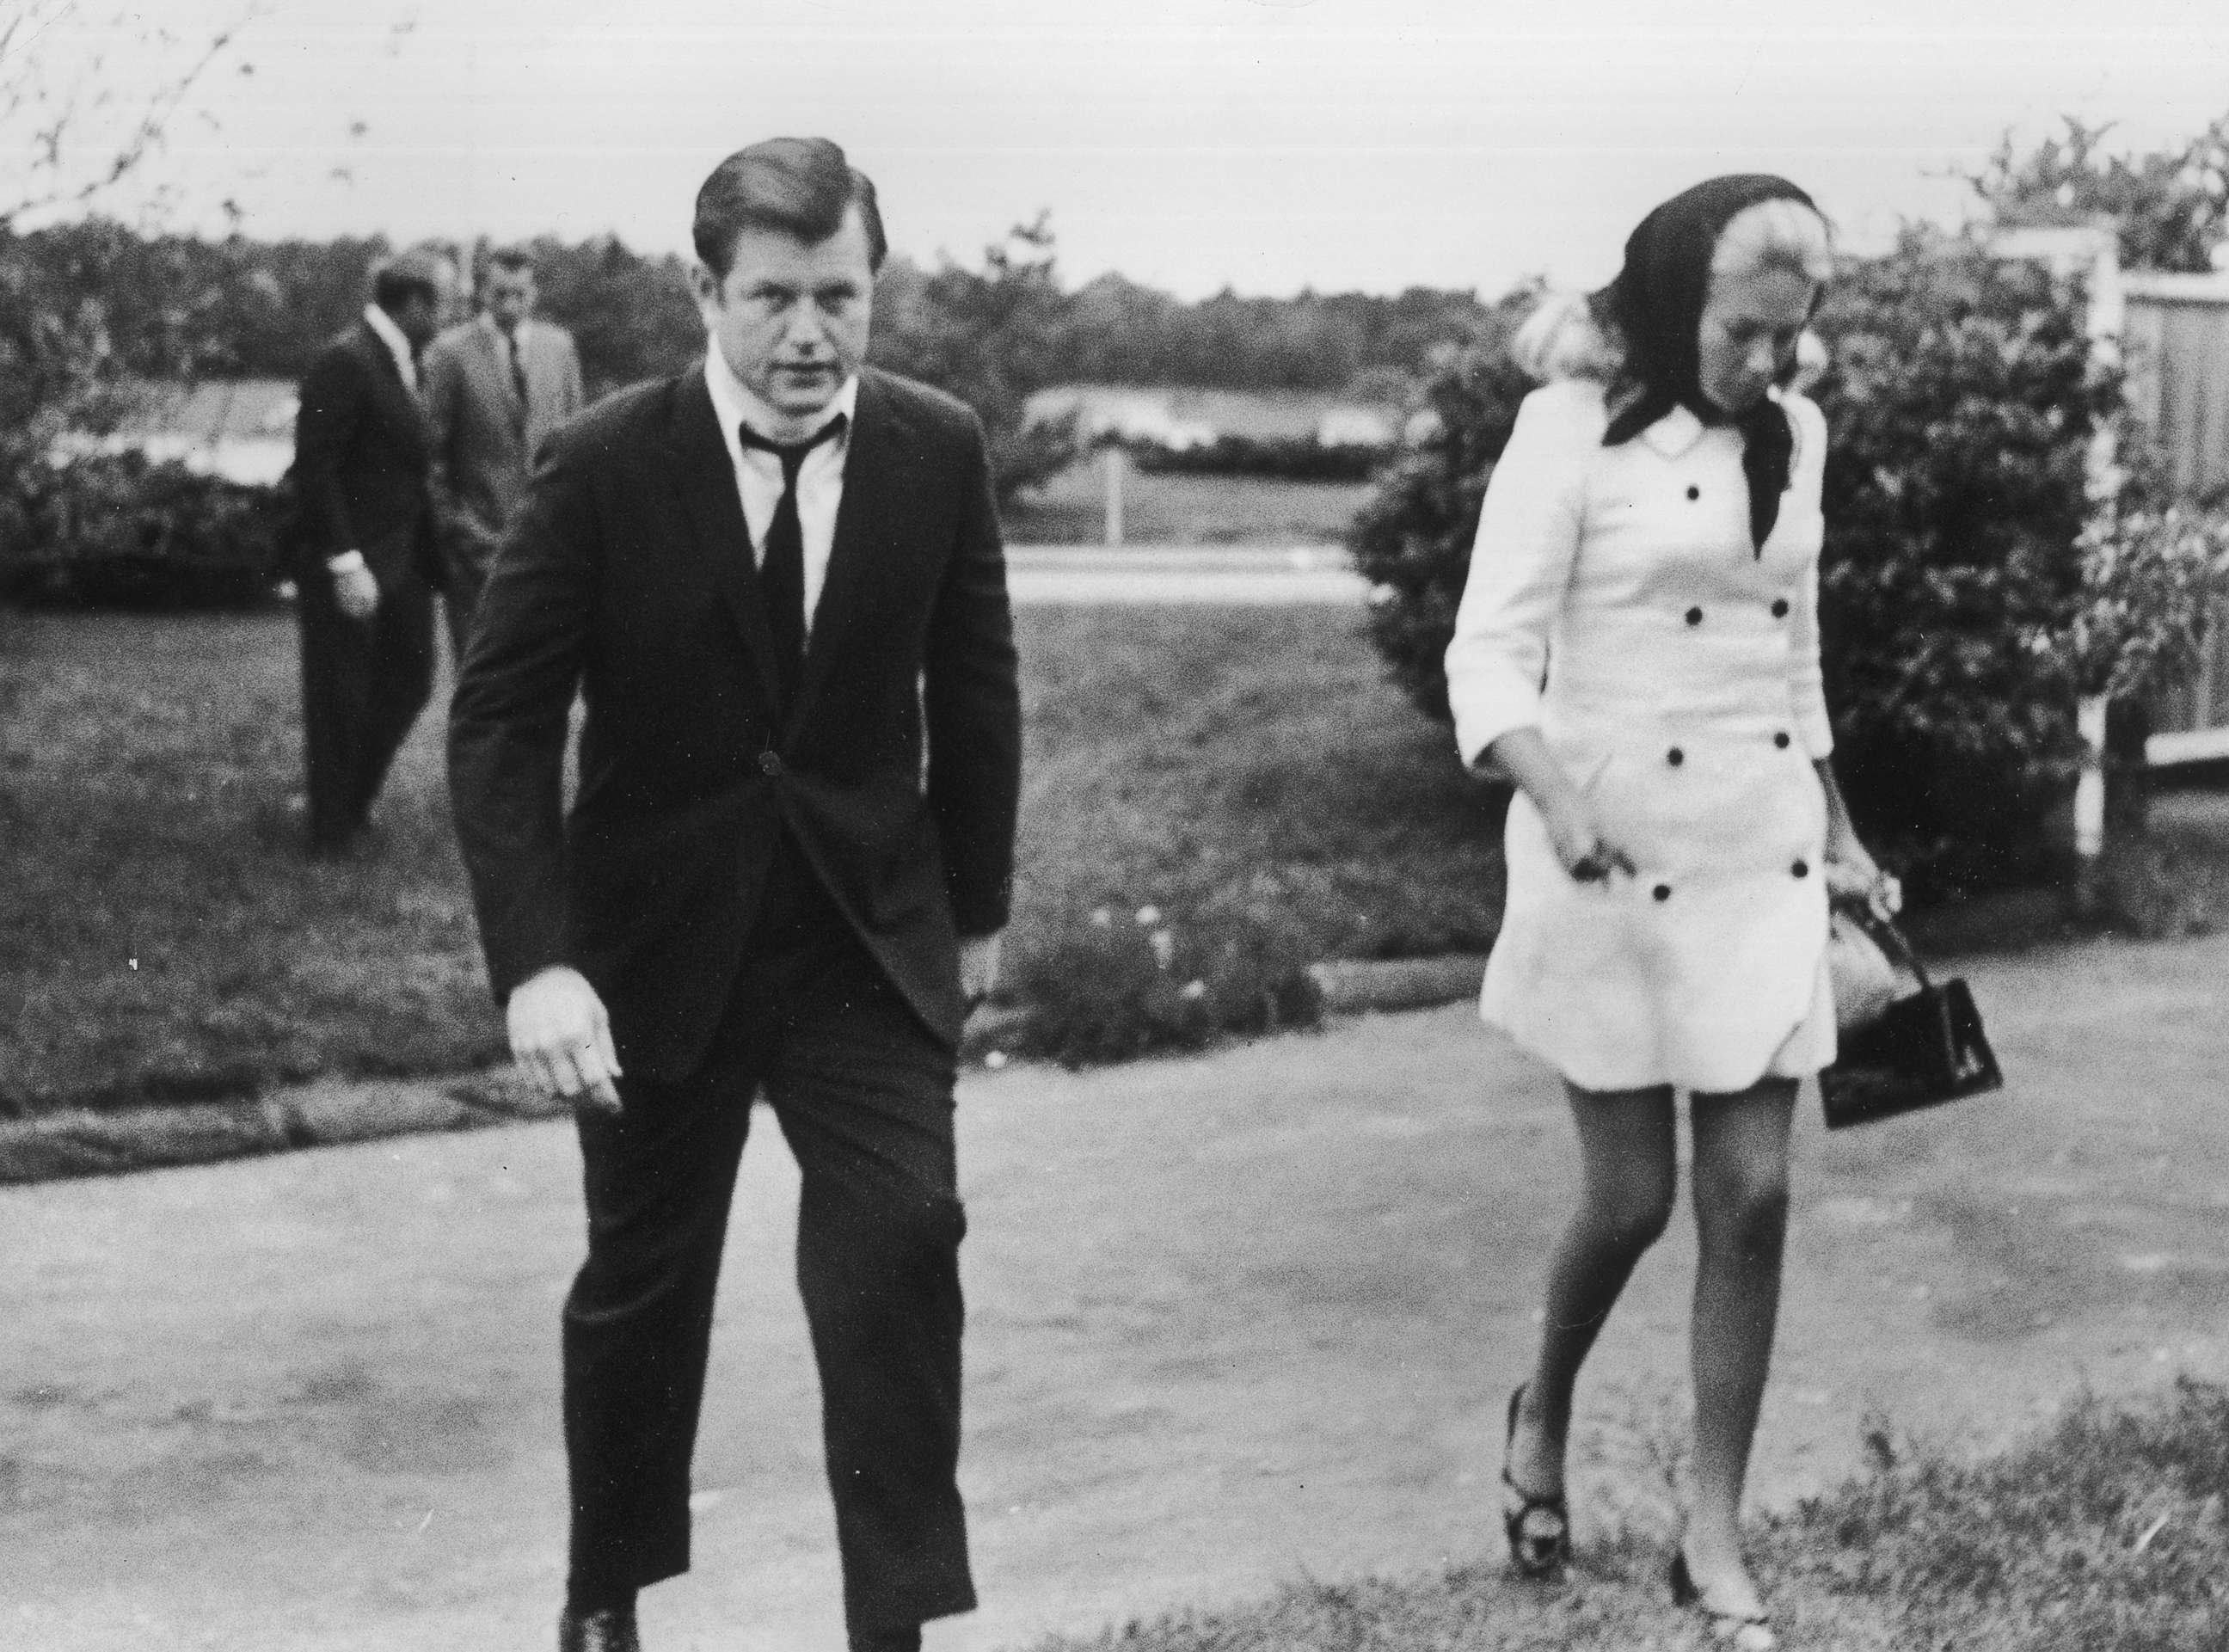 photo sen edward kennedy and his wife joan at the hyannis airport